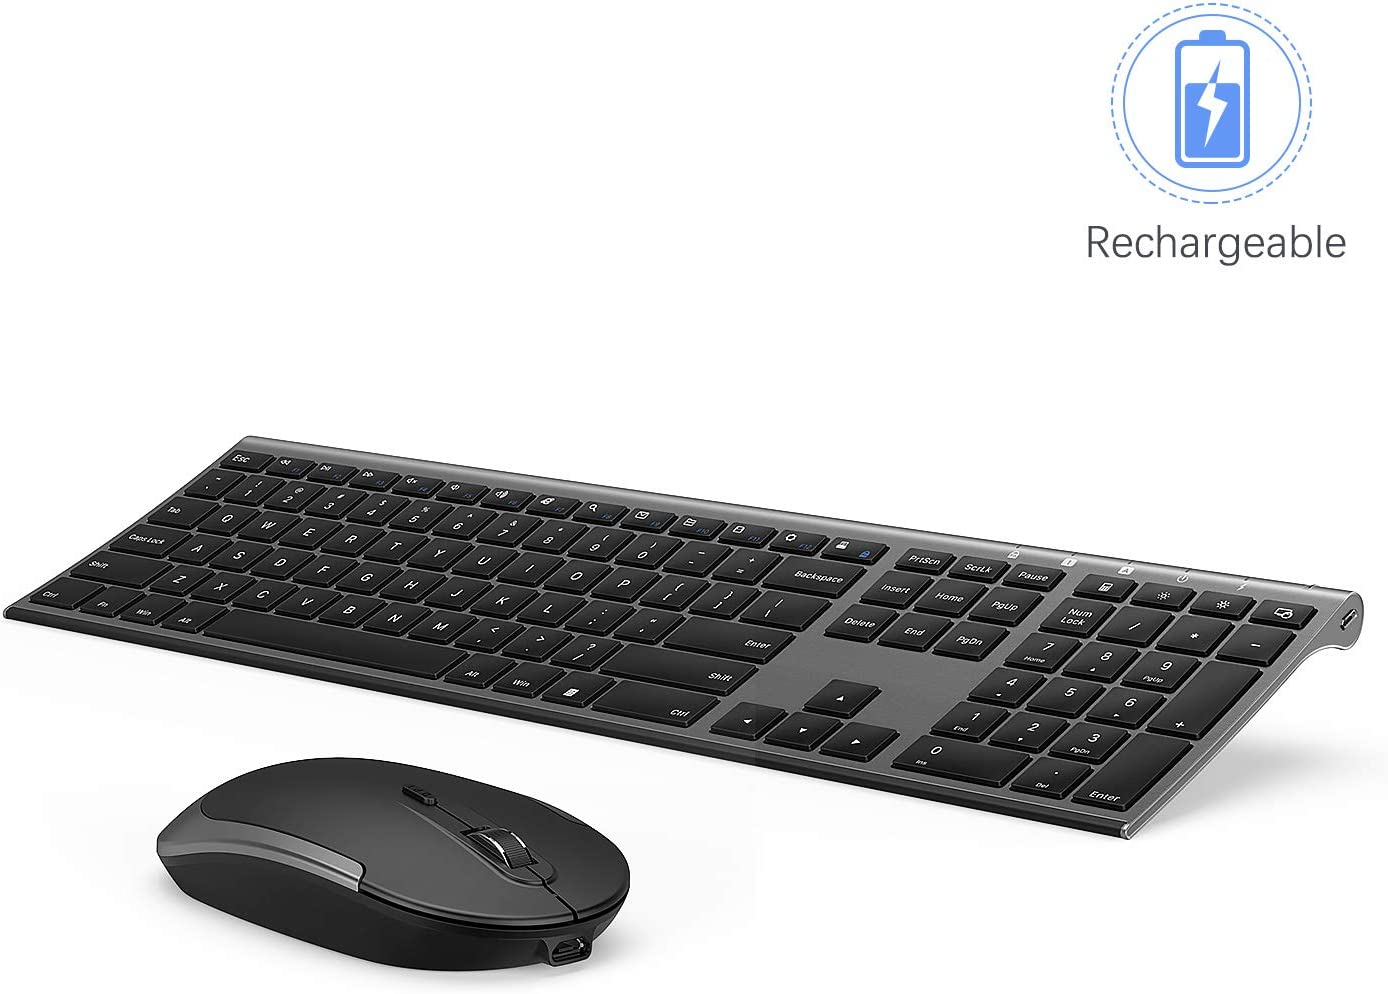 Wireless Keyboard and Mouse, Vssoplor 2.4GHz Rechargeable Compact Quiet Full-Size Keyboard and Mouse Combo with Nano USB Receiver for Windows